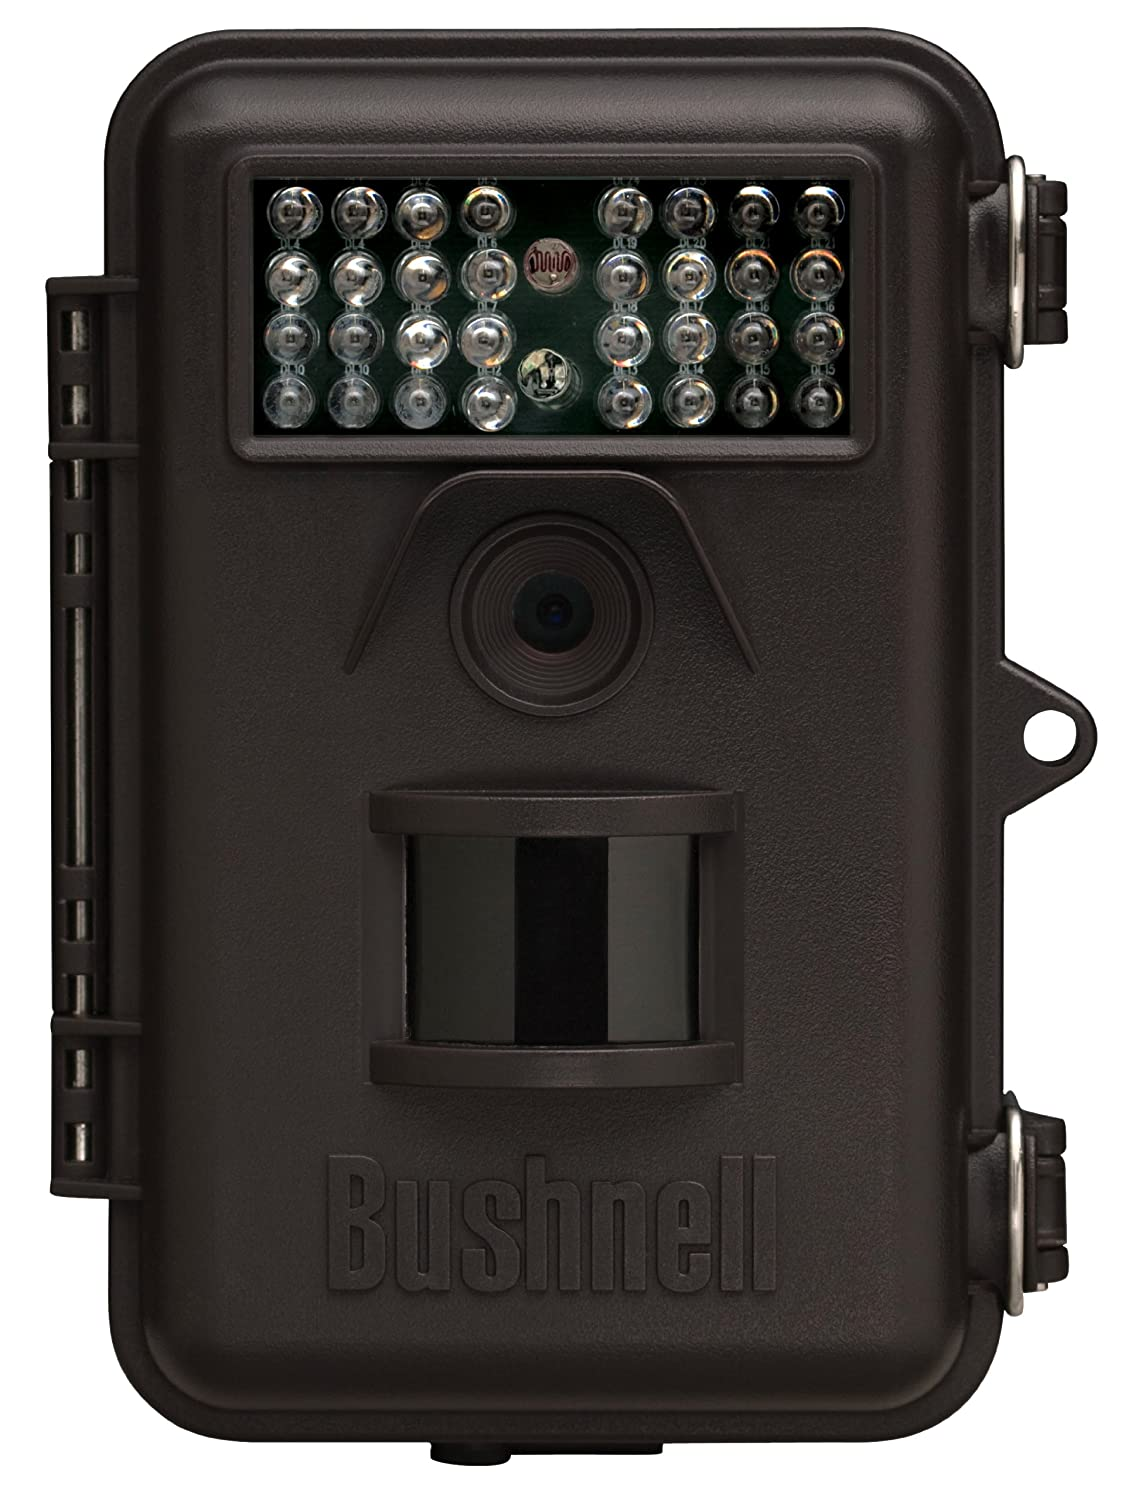 bushnell 8mp trophy cam standard edition summers acres. Black Bedroom Furniture Sets. Home Design Ideas